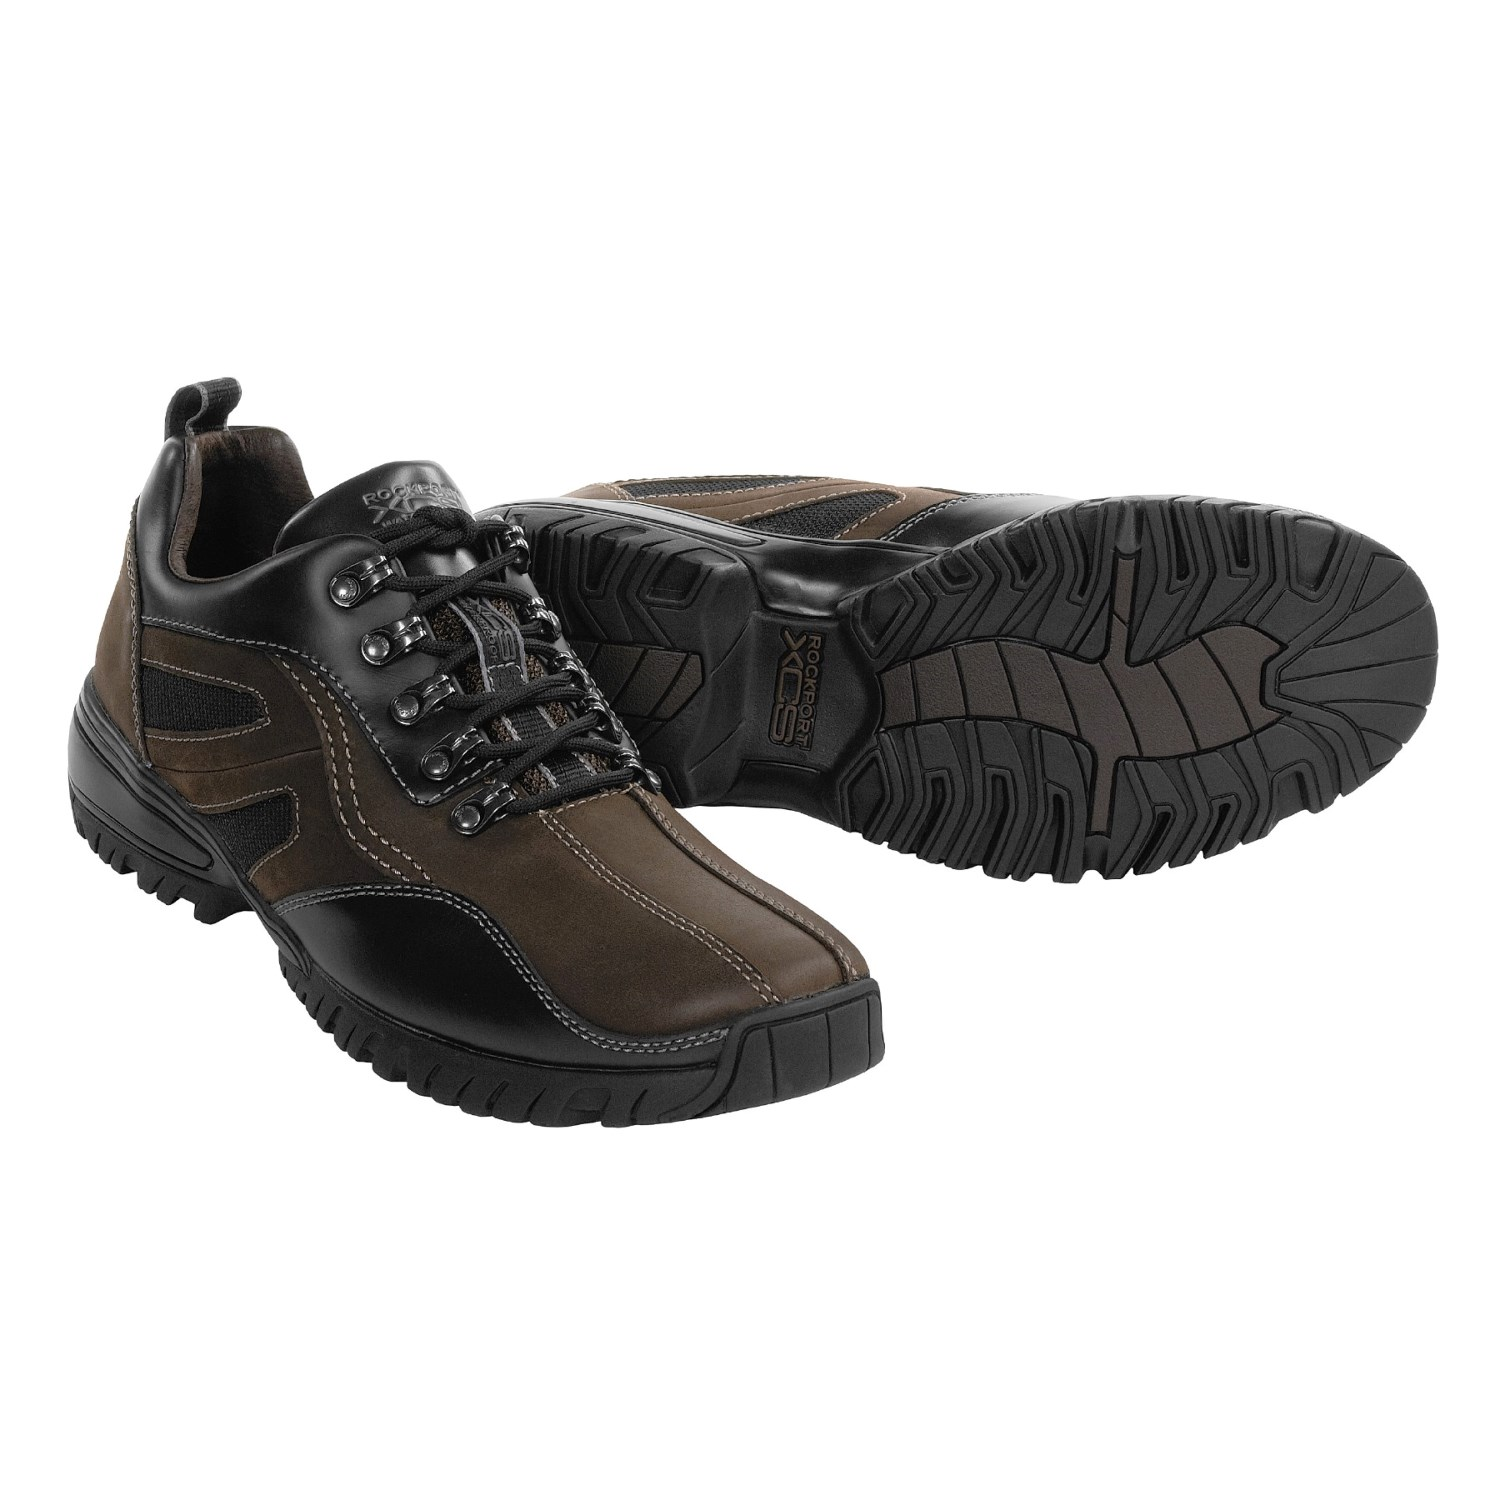 The North Face Shoes Hydro Track Review